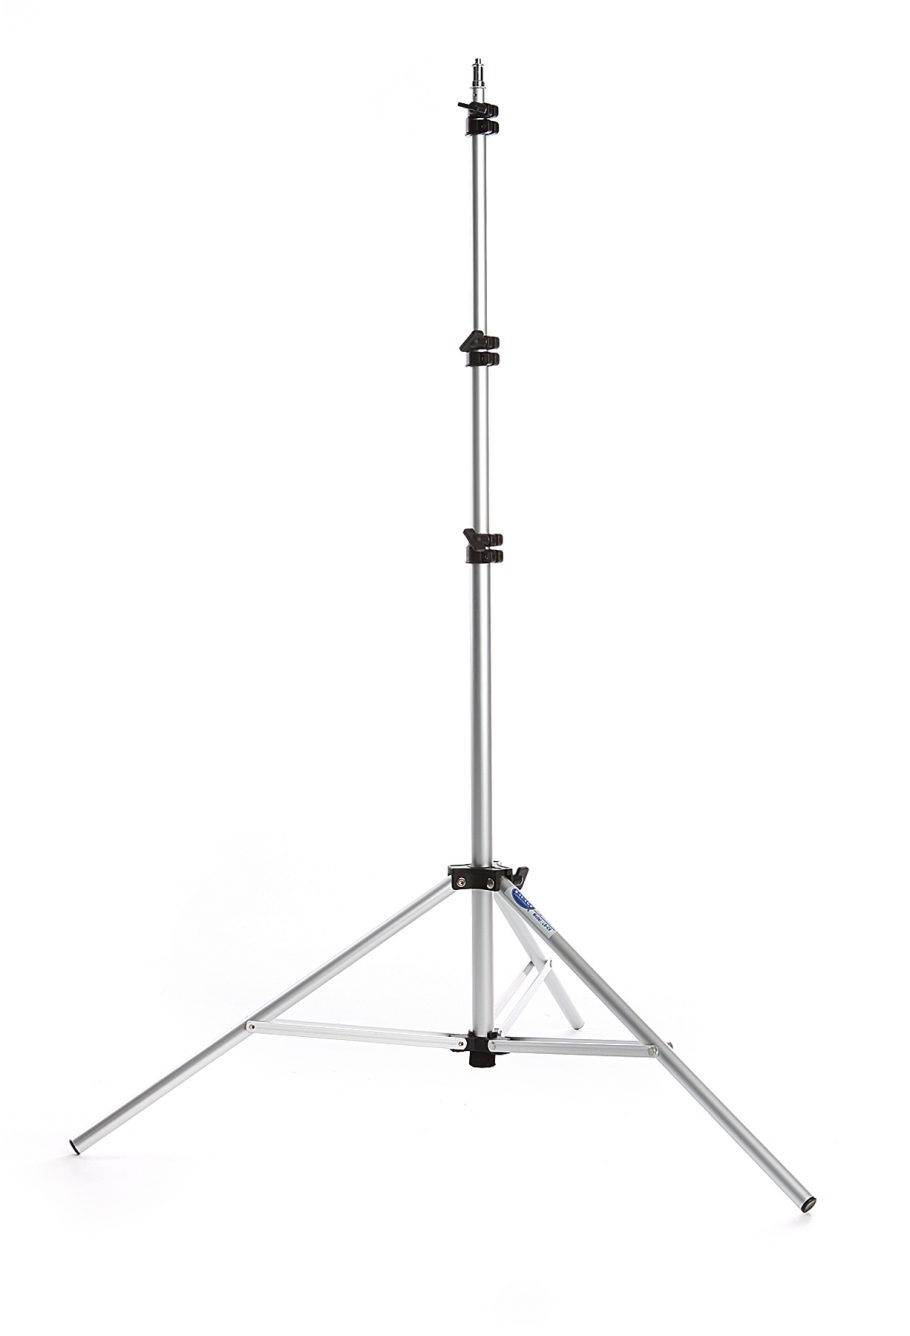 8′ Aluminum Non-Air Cushioned Light Stand Image 1